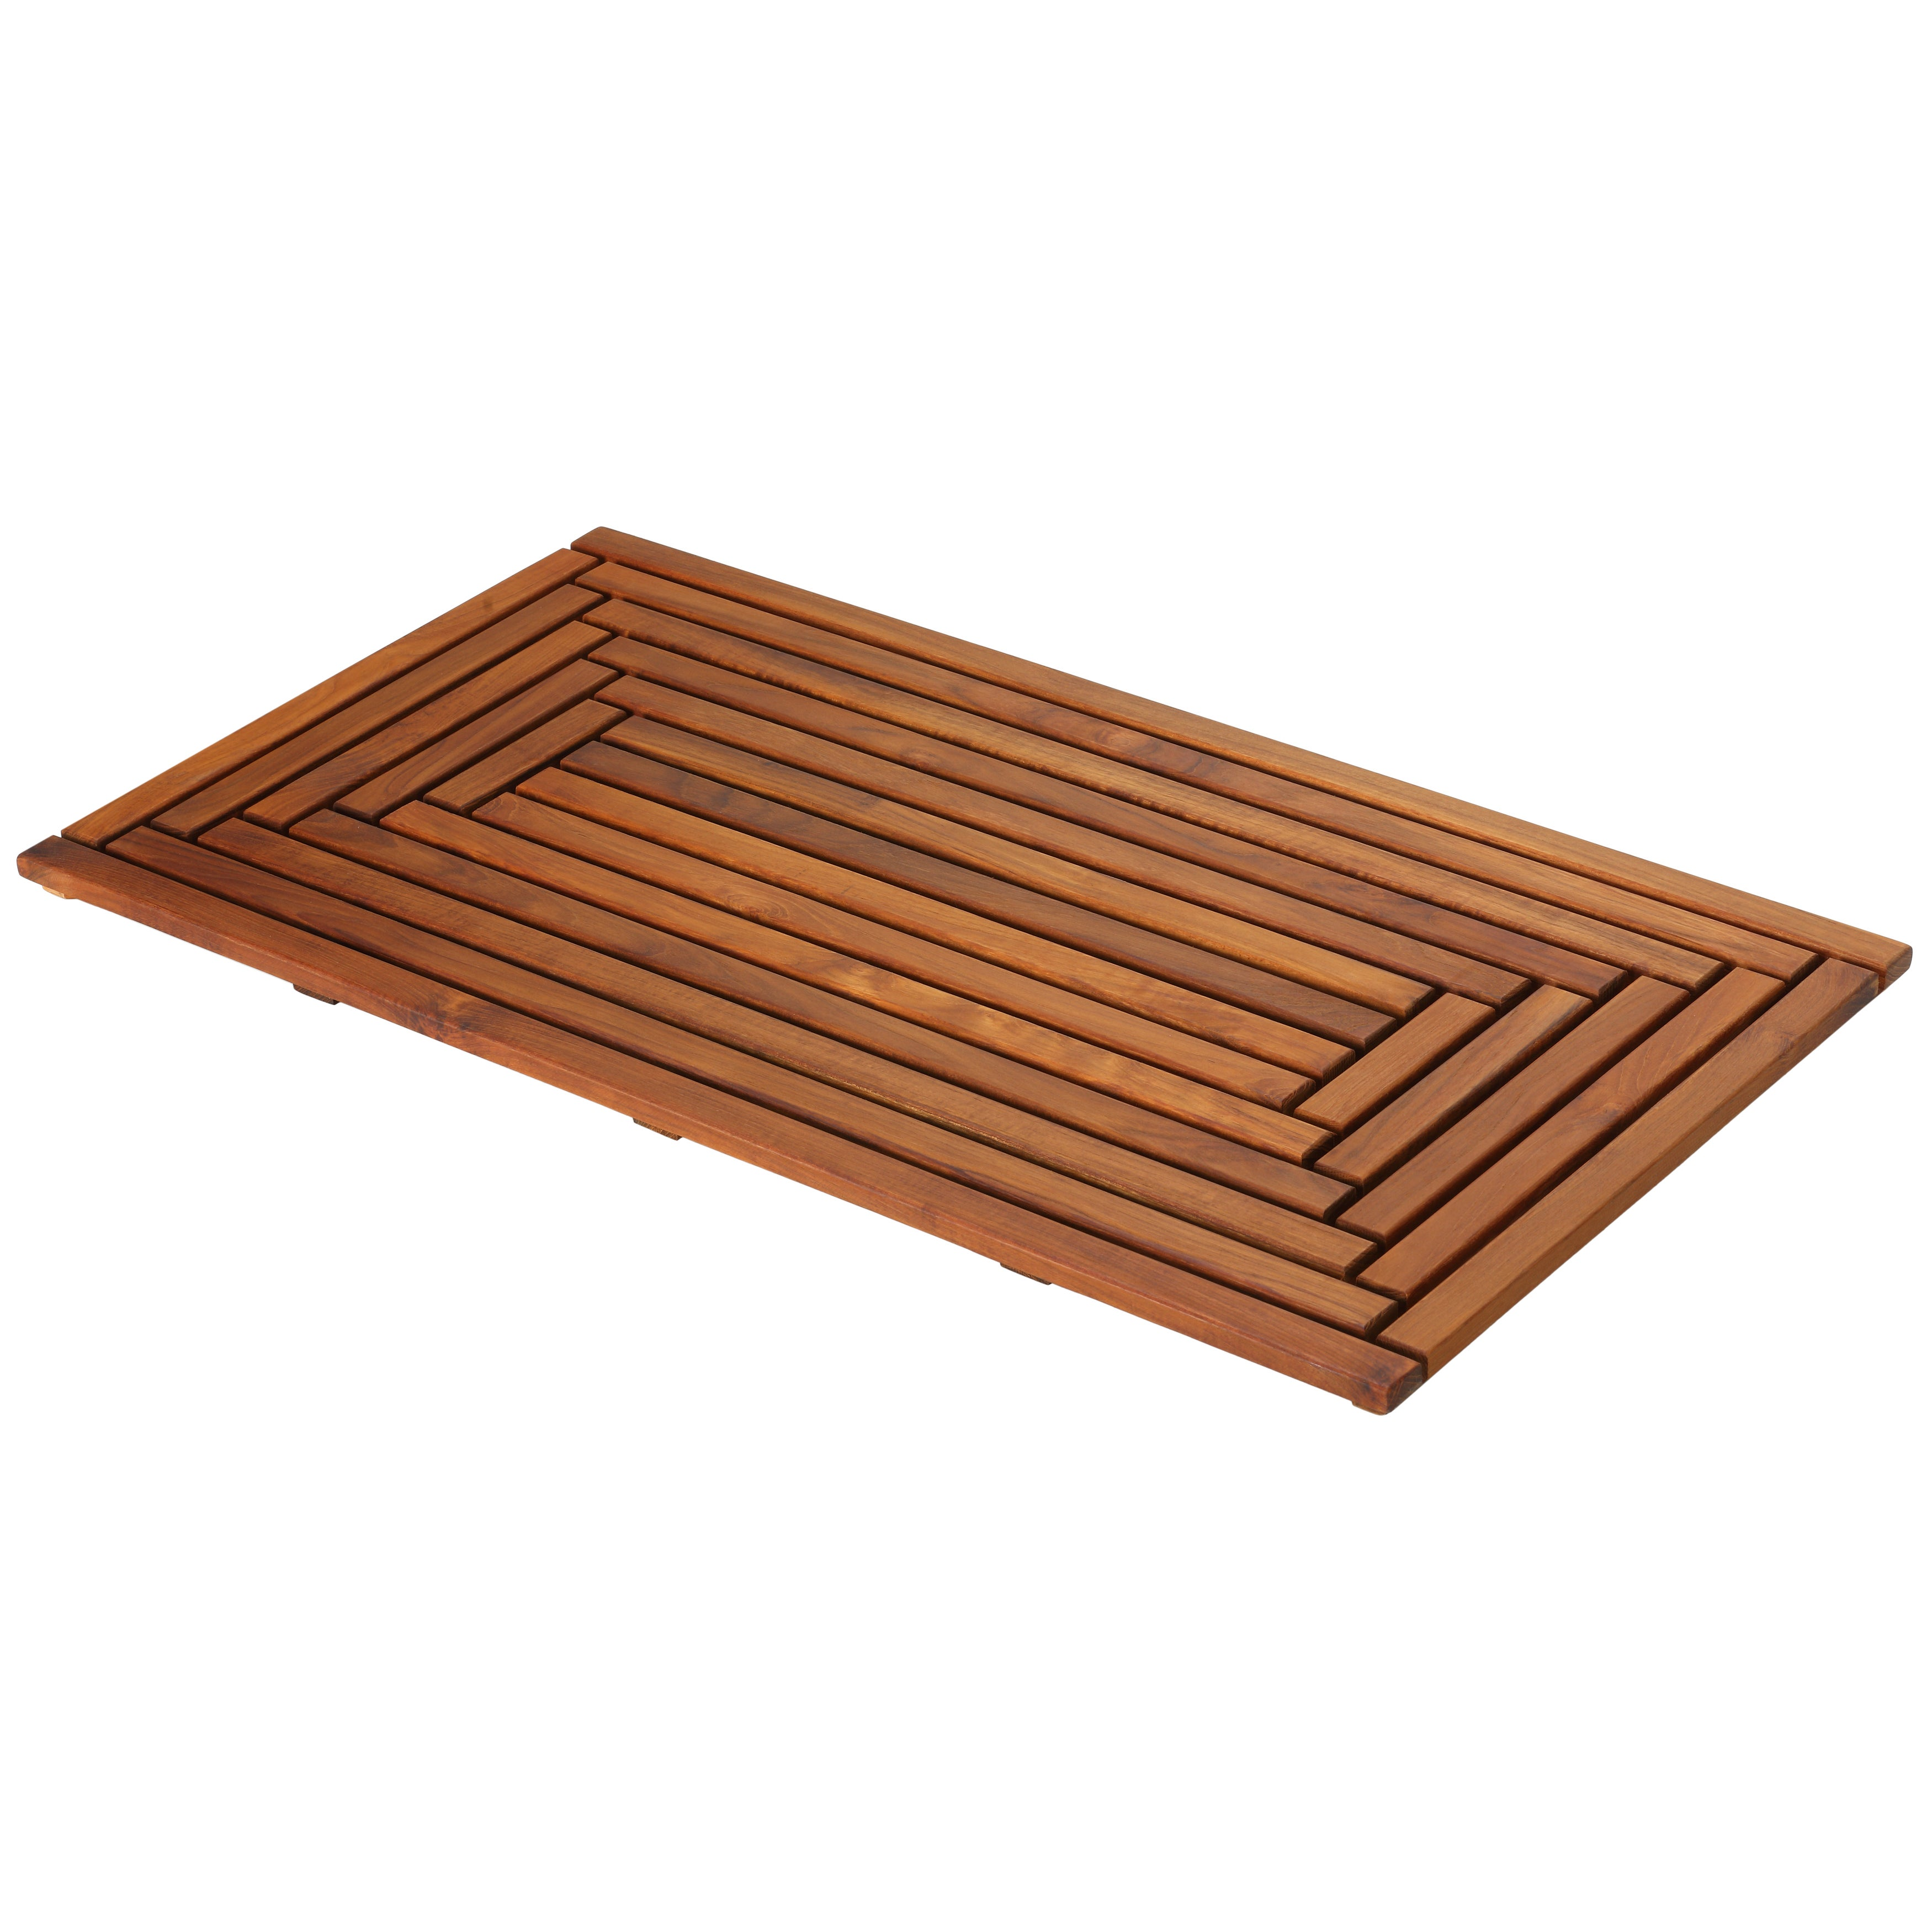 Bare Decor Zen Spa Shower Or Door Mat In Solid Teak Wood And Oiled Finish 31.5